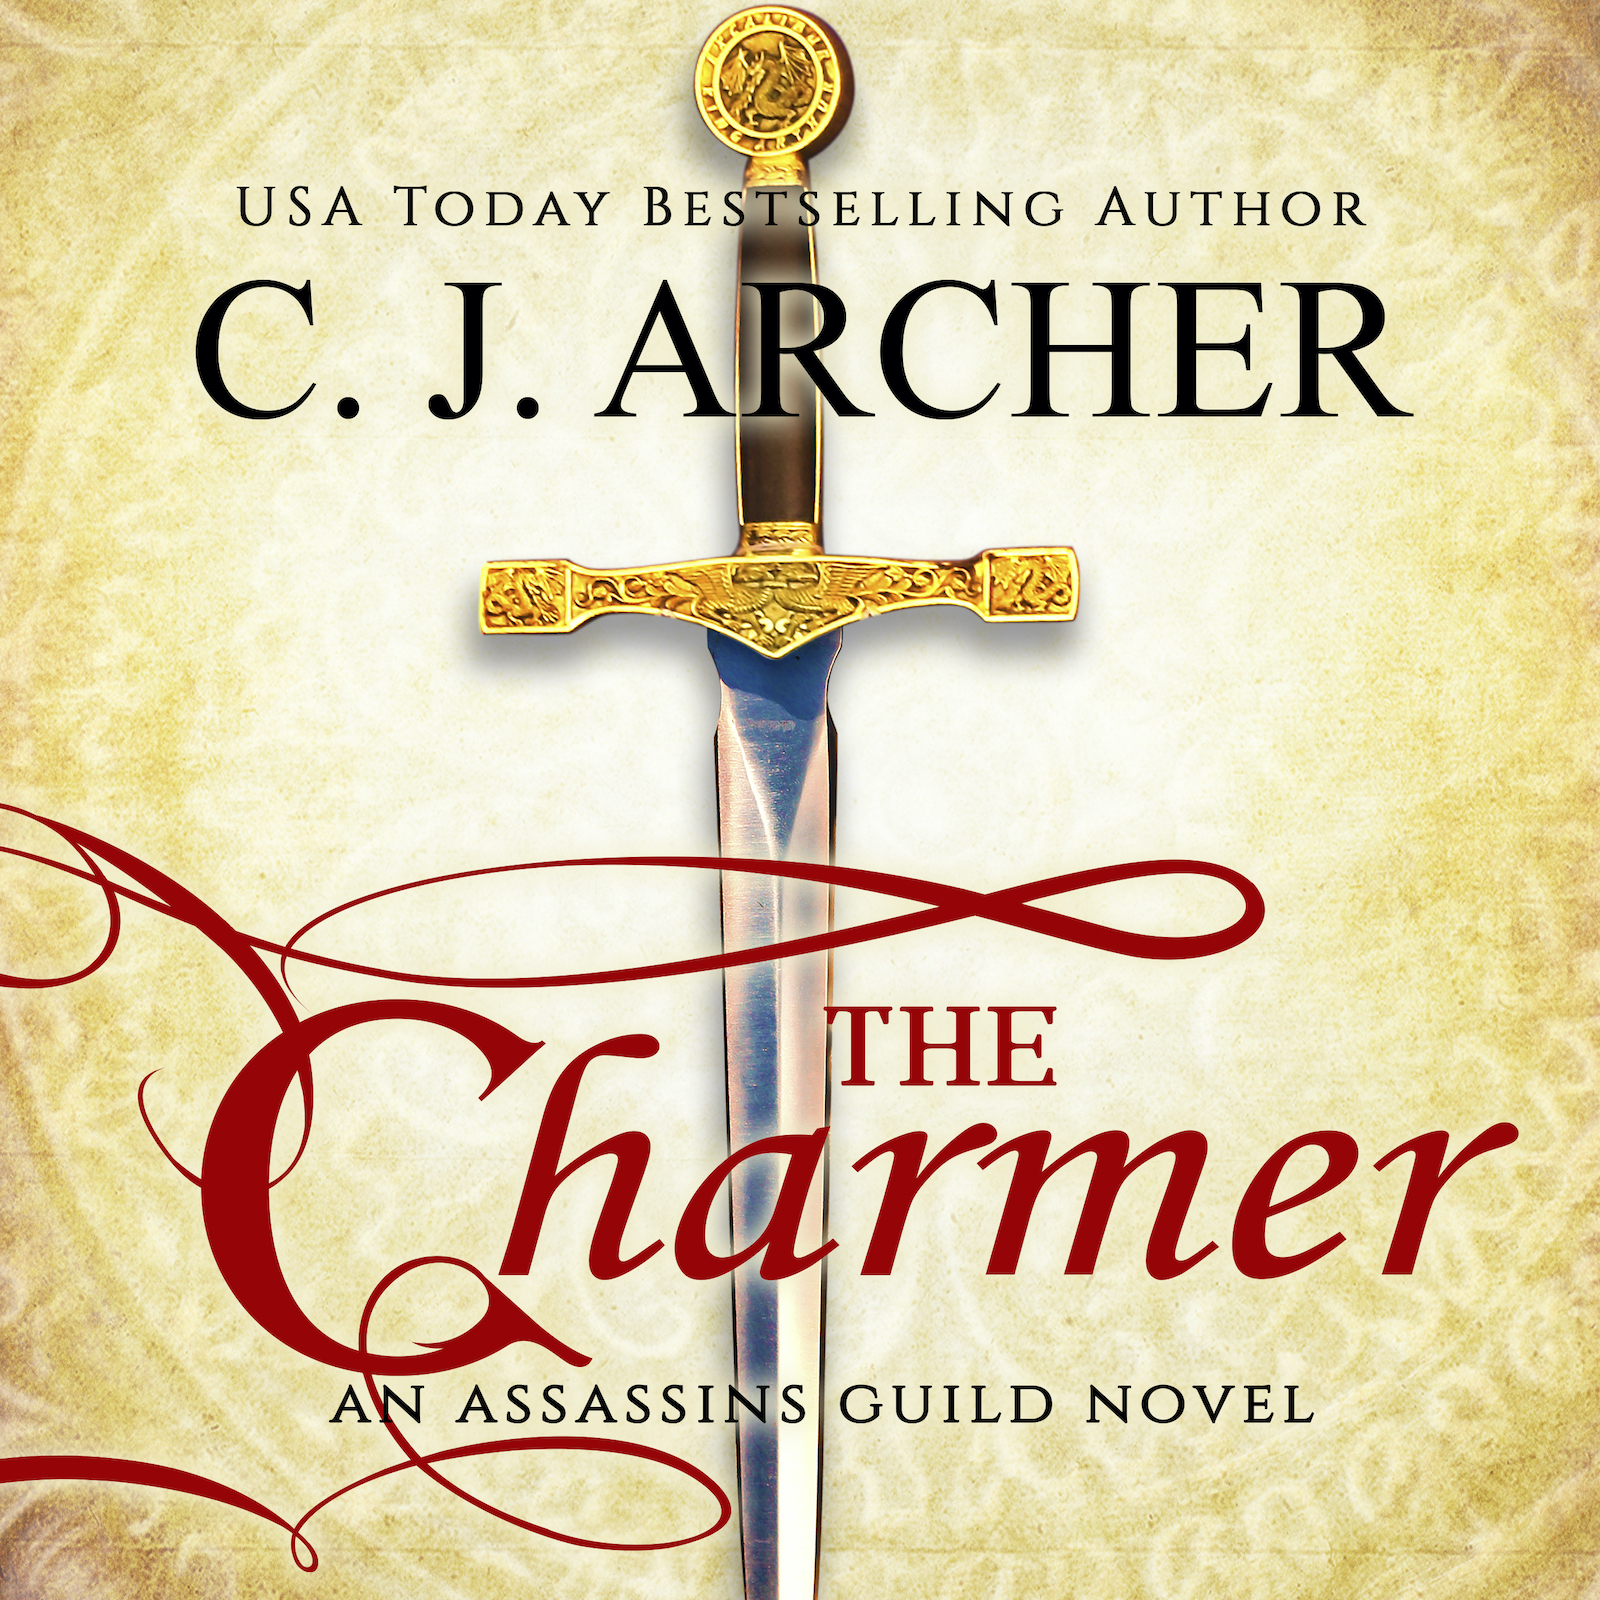 The Charmer audiobook by CJ Archer